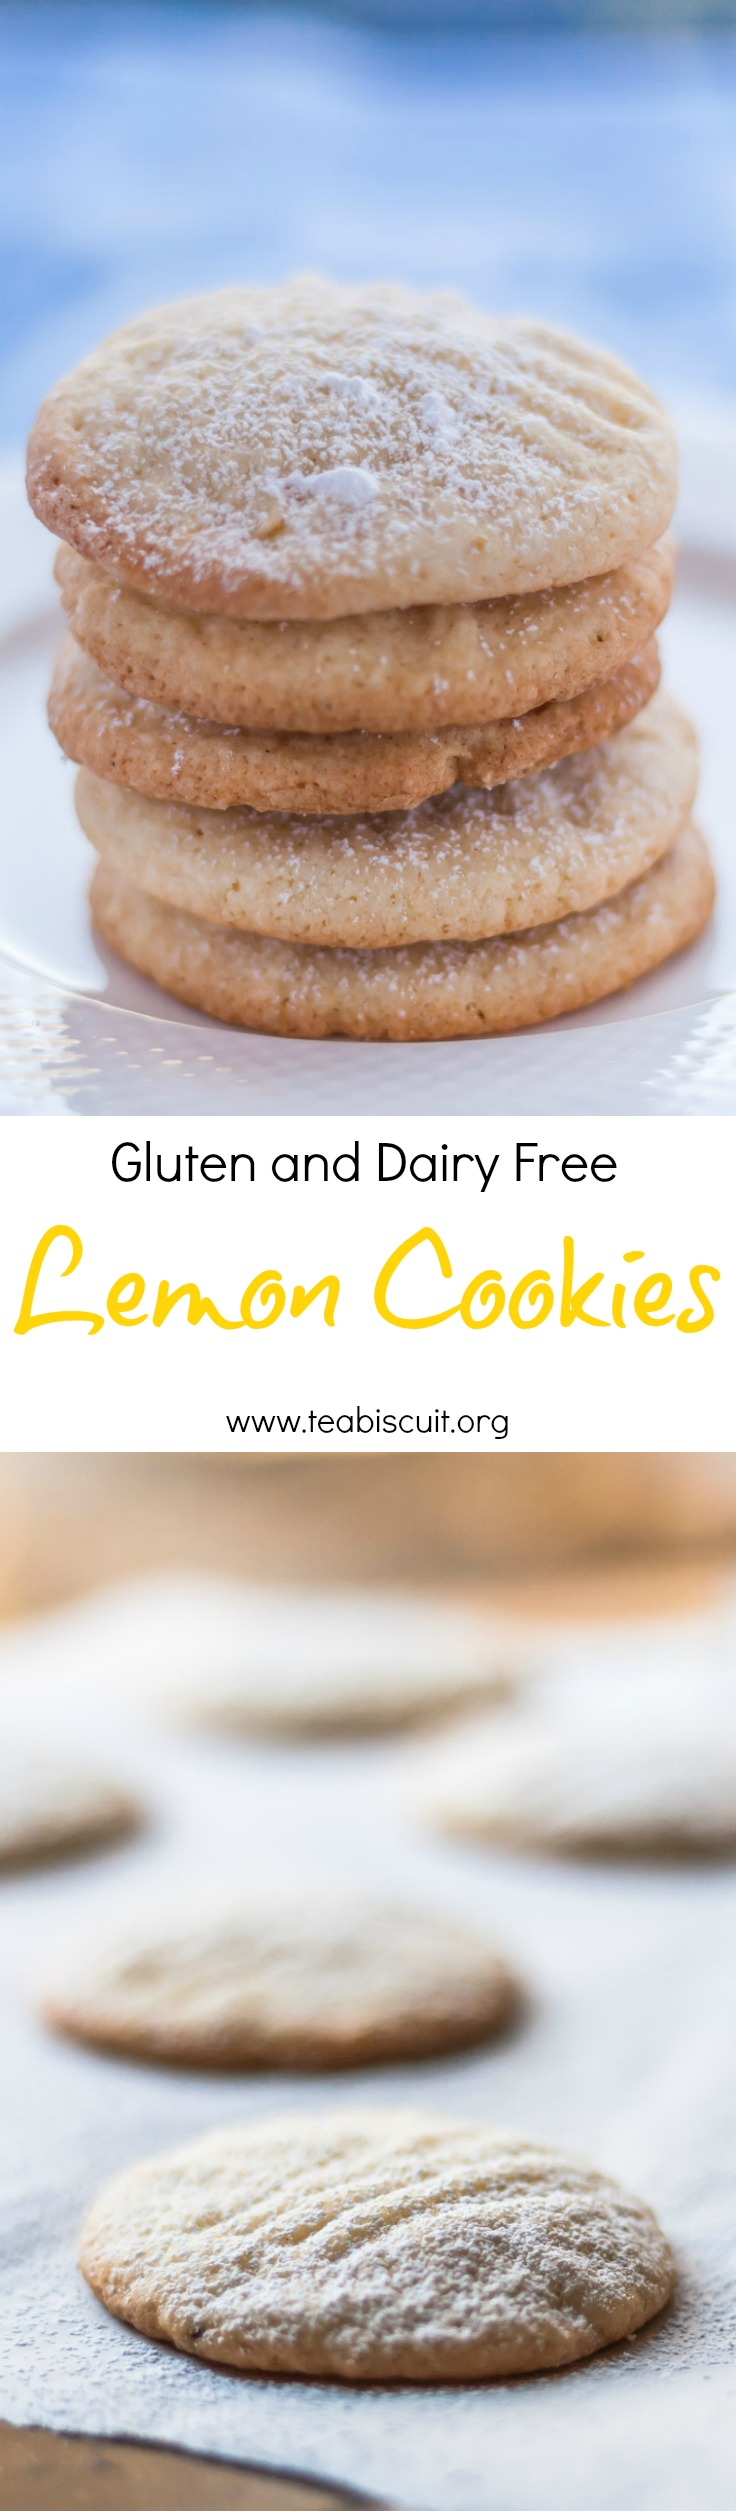 Easy egg free cookie recipes